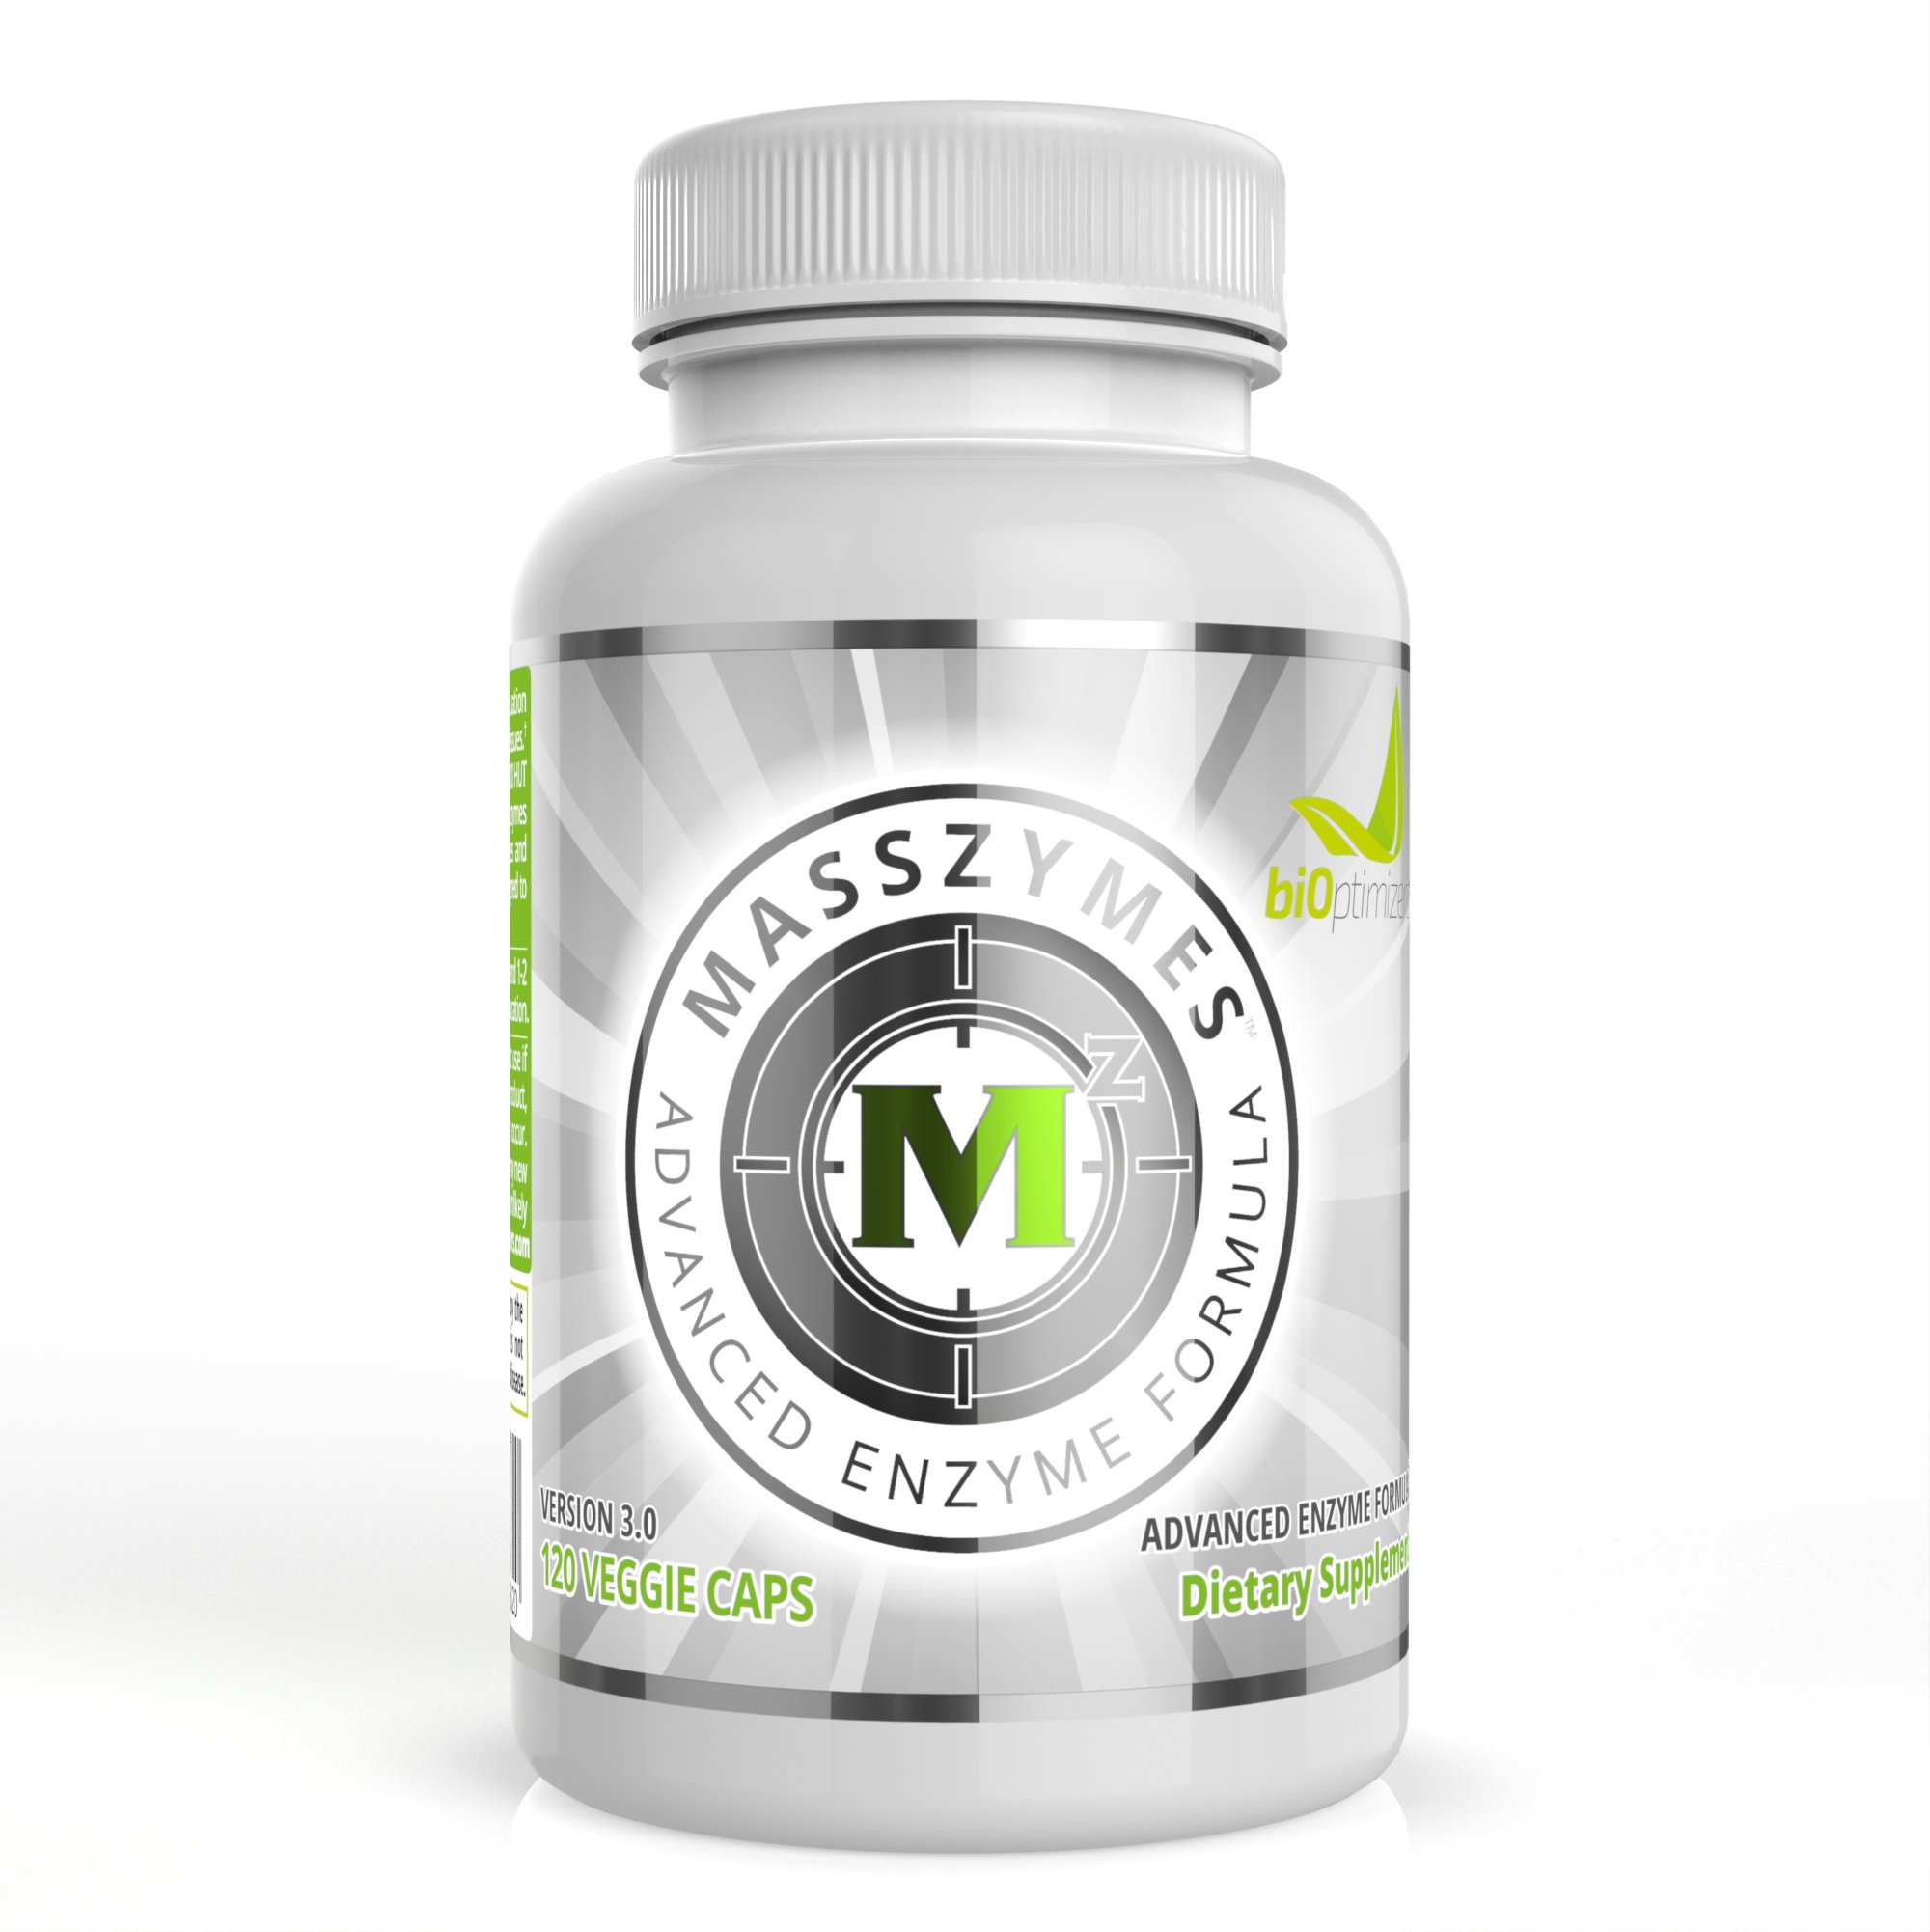 Premium Digestive Enzymes for Women and Men - Now with AstraZymeTM - Super Digestive Enzyme Supplements - MassZymes by BiOptimizers (120 Capsules)